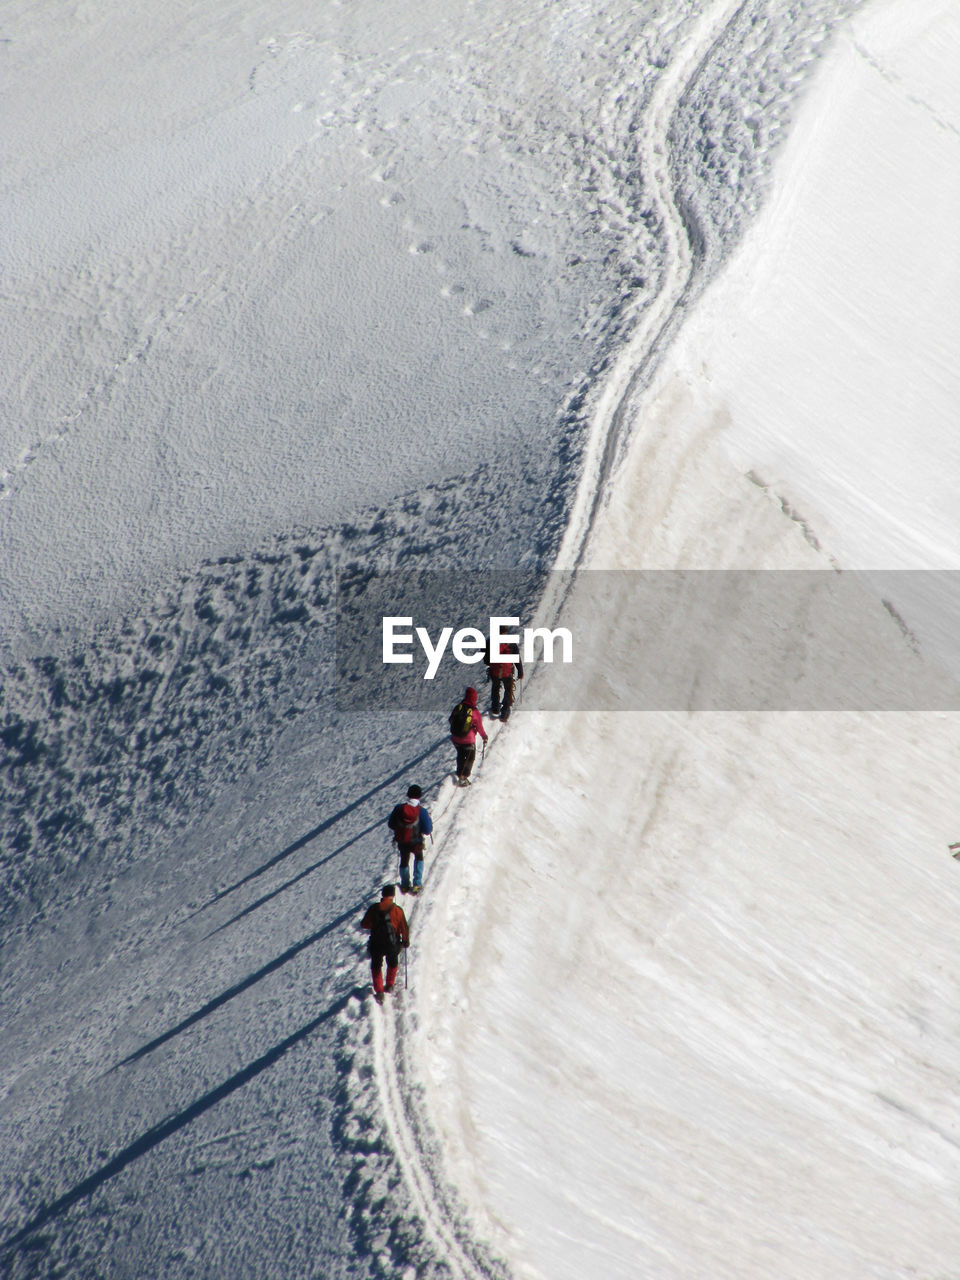 High Angle View Of People Walking In Snow Covered Landscape